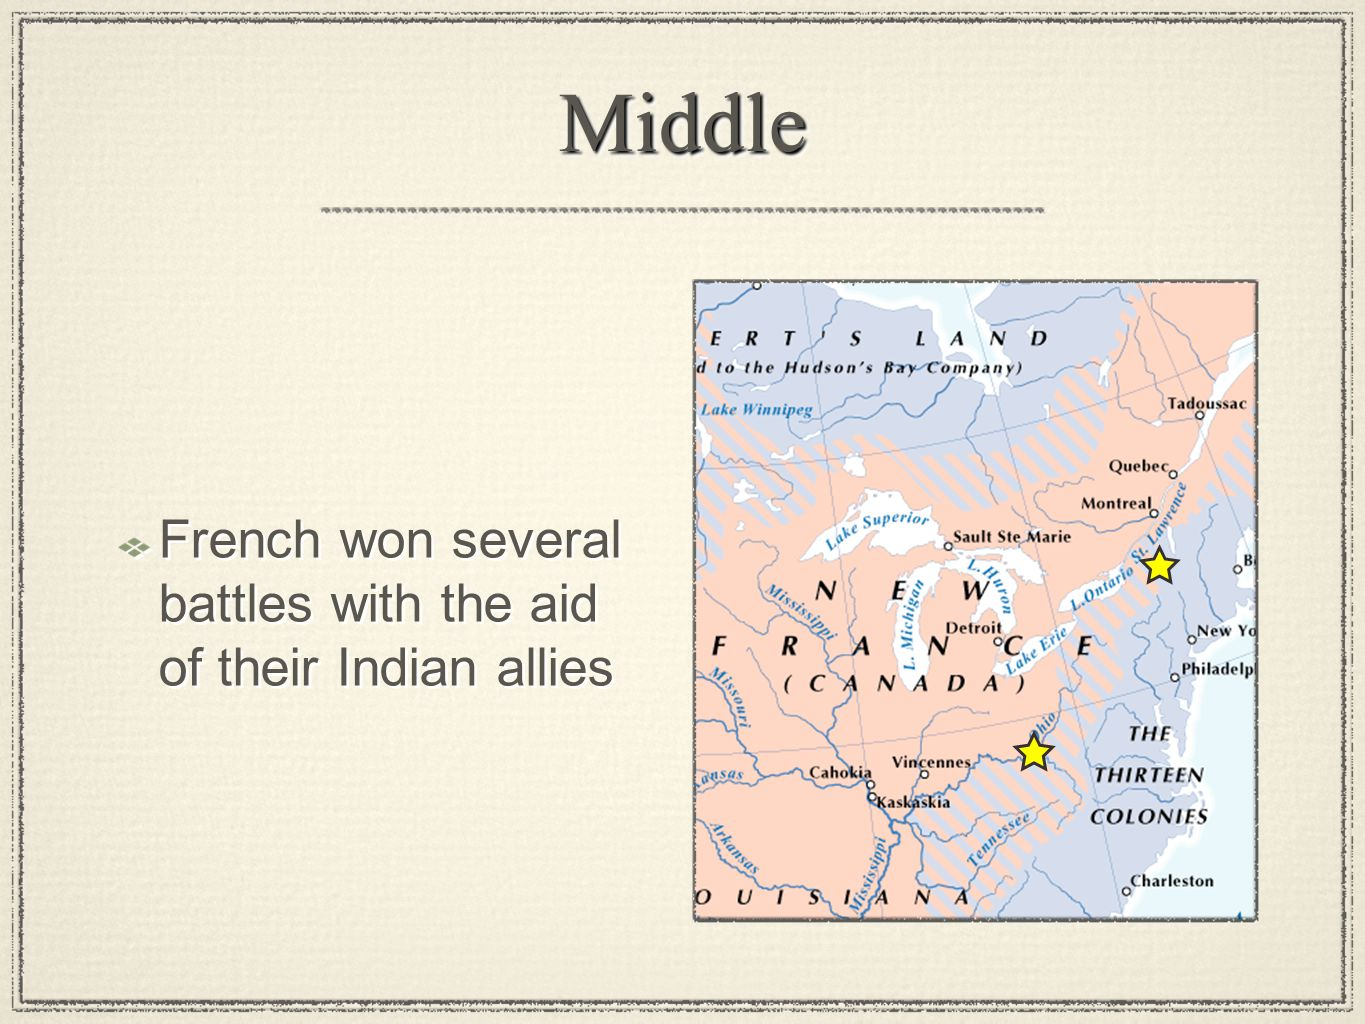 MiddleMiddle French won several battles with the aid of their Indian allies